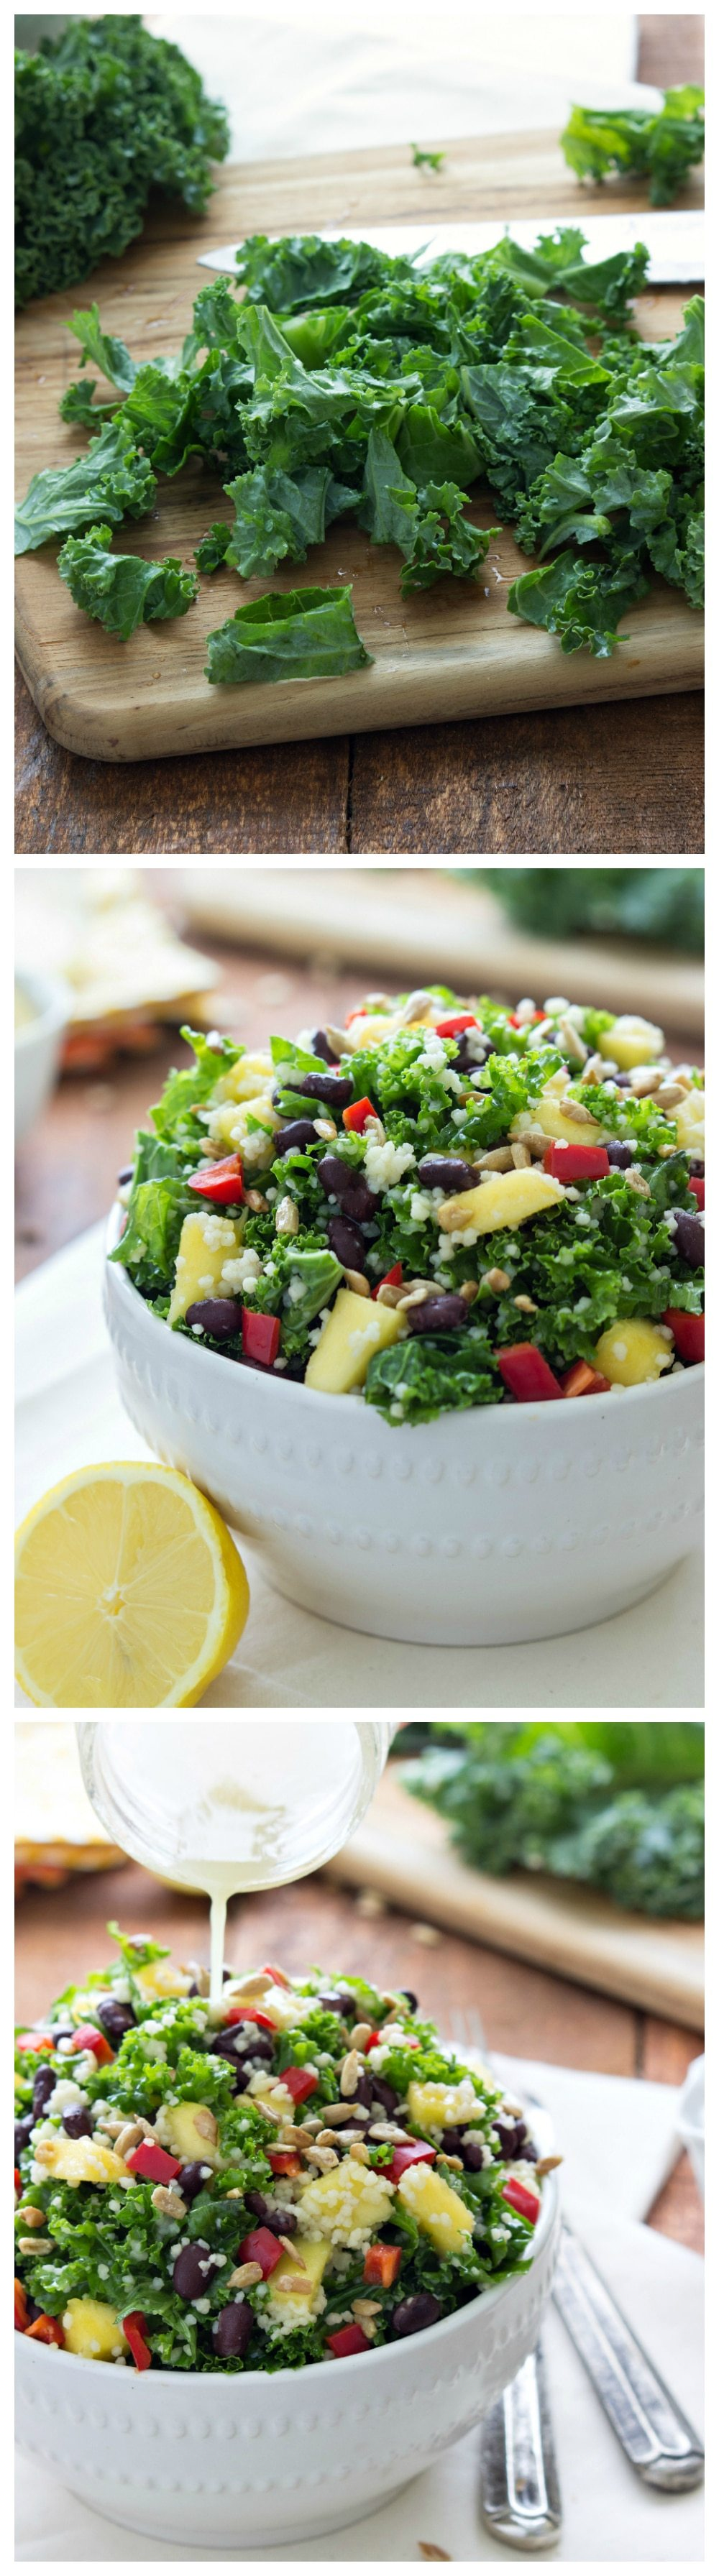 A simple detoxifying salad - couscous and kale mixed with a lemon vinaigrette I via chelseasmessyapron I #cleaneating #kale #mango